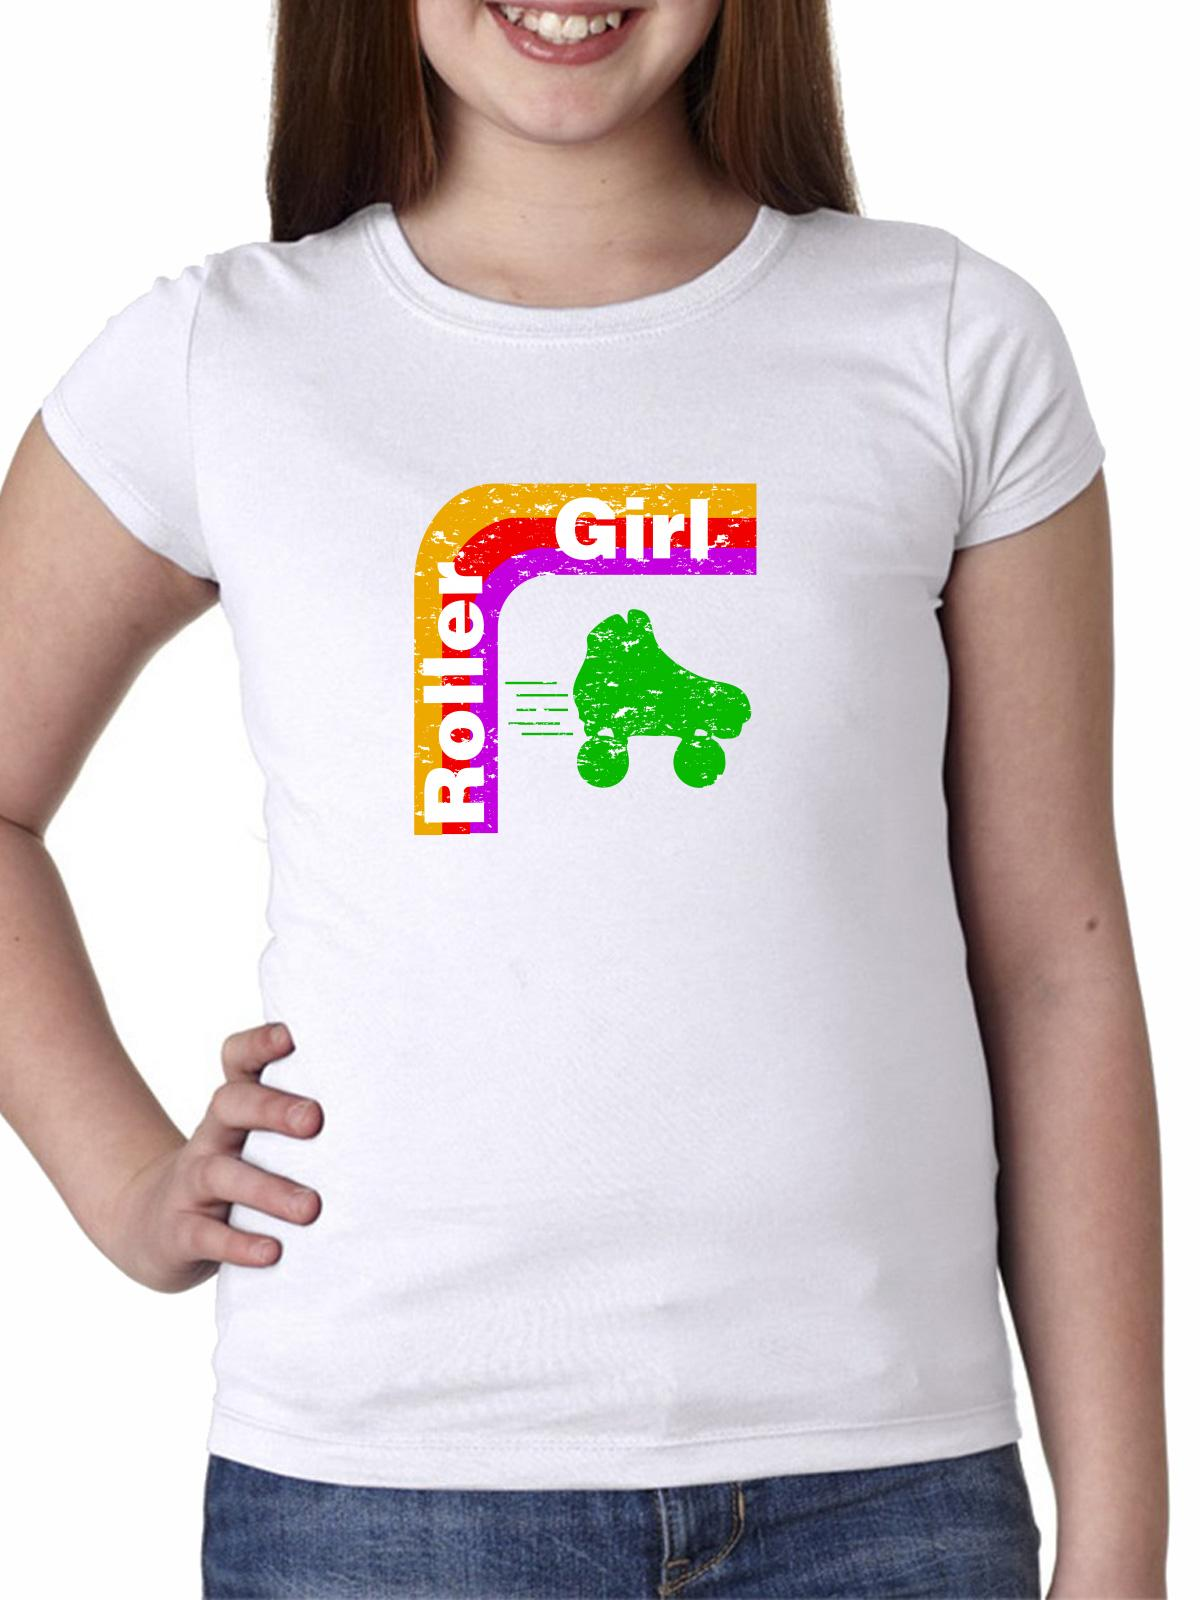 Roller Girl Roller Skate & Rainbow Arch 70s Girl's Cotton Youth T-Shirt by Hollywood Thread